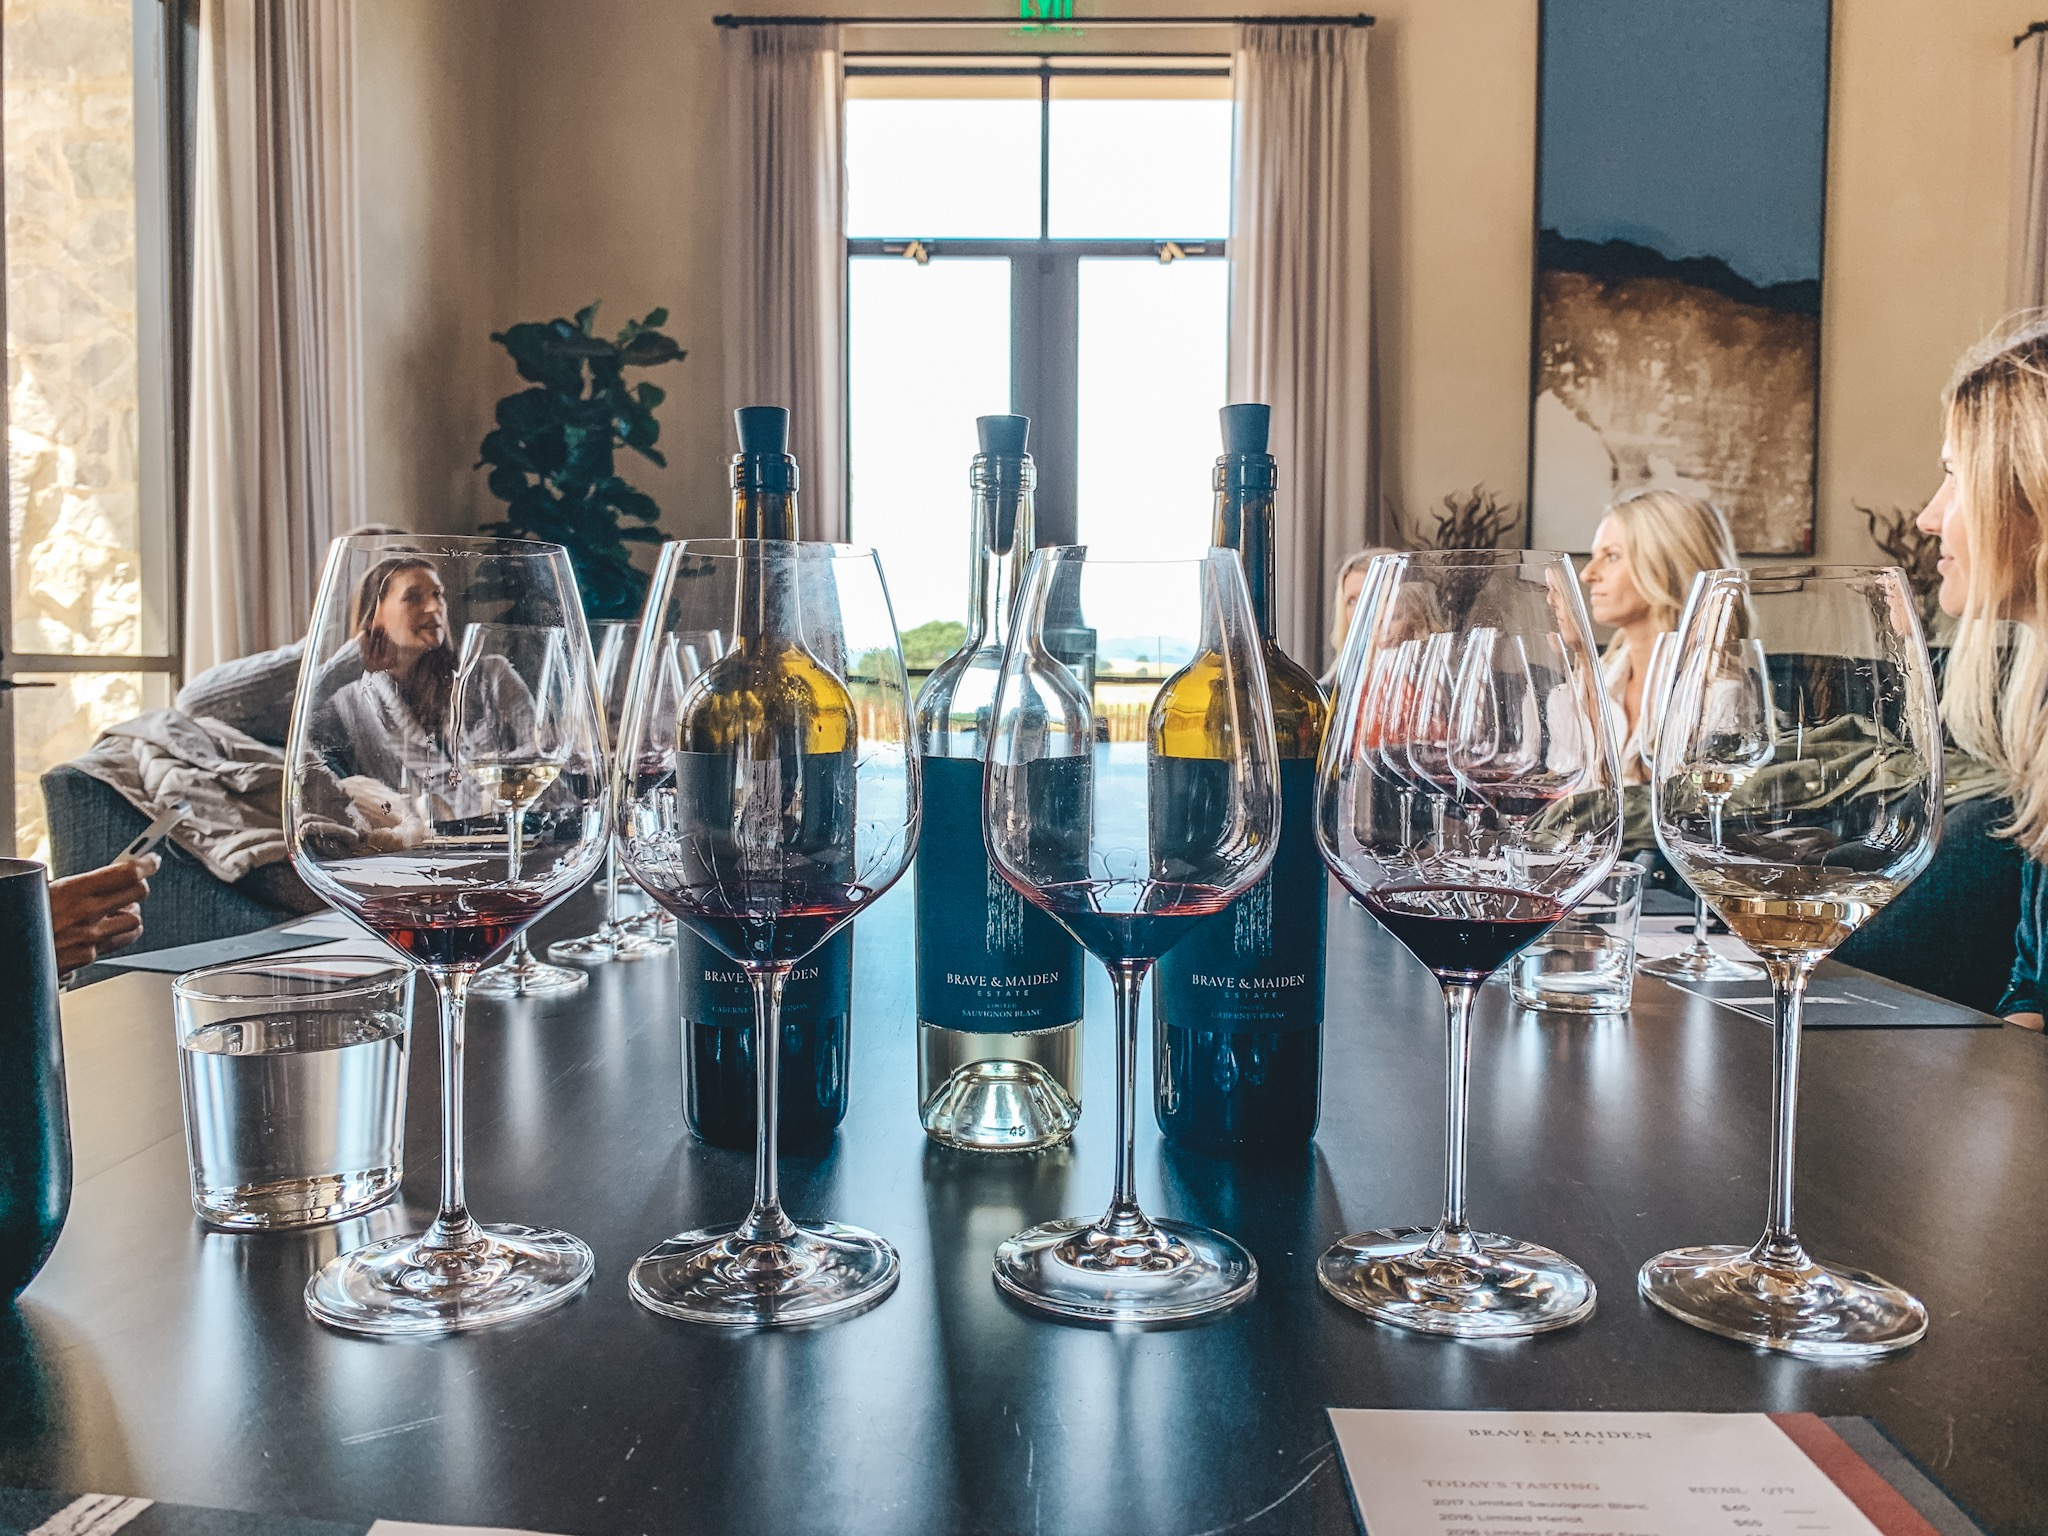 Brave & Maiden Estate  | Santa Barbara Wine Country | Erika Beach